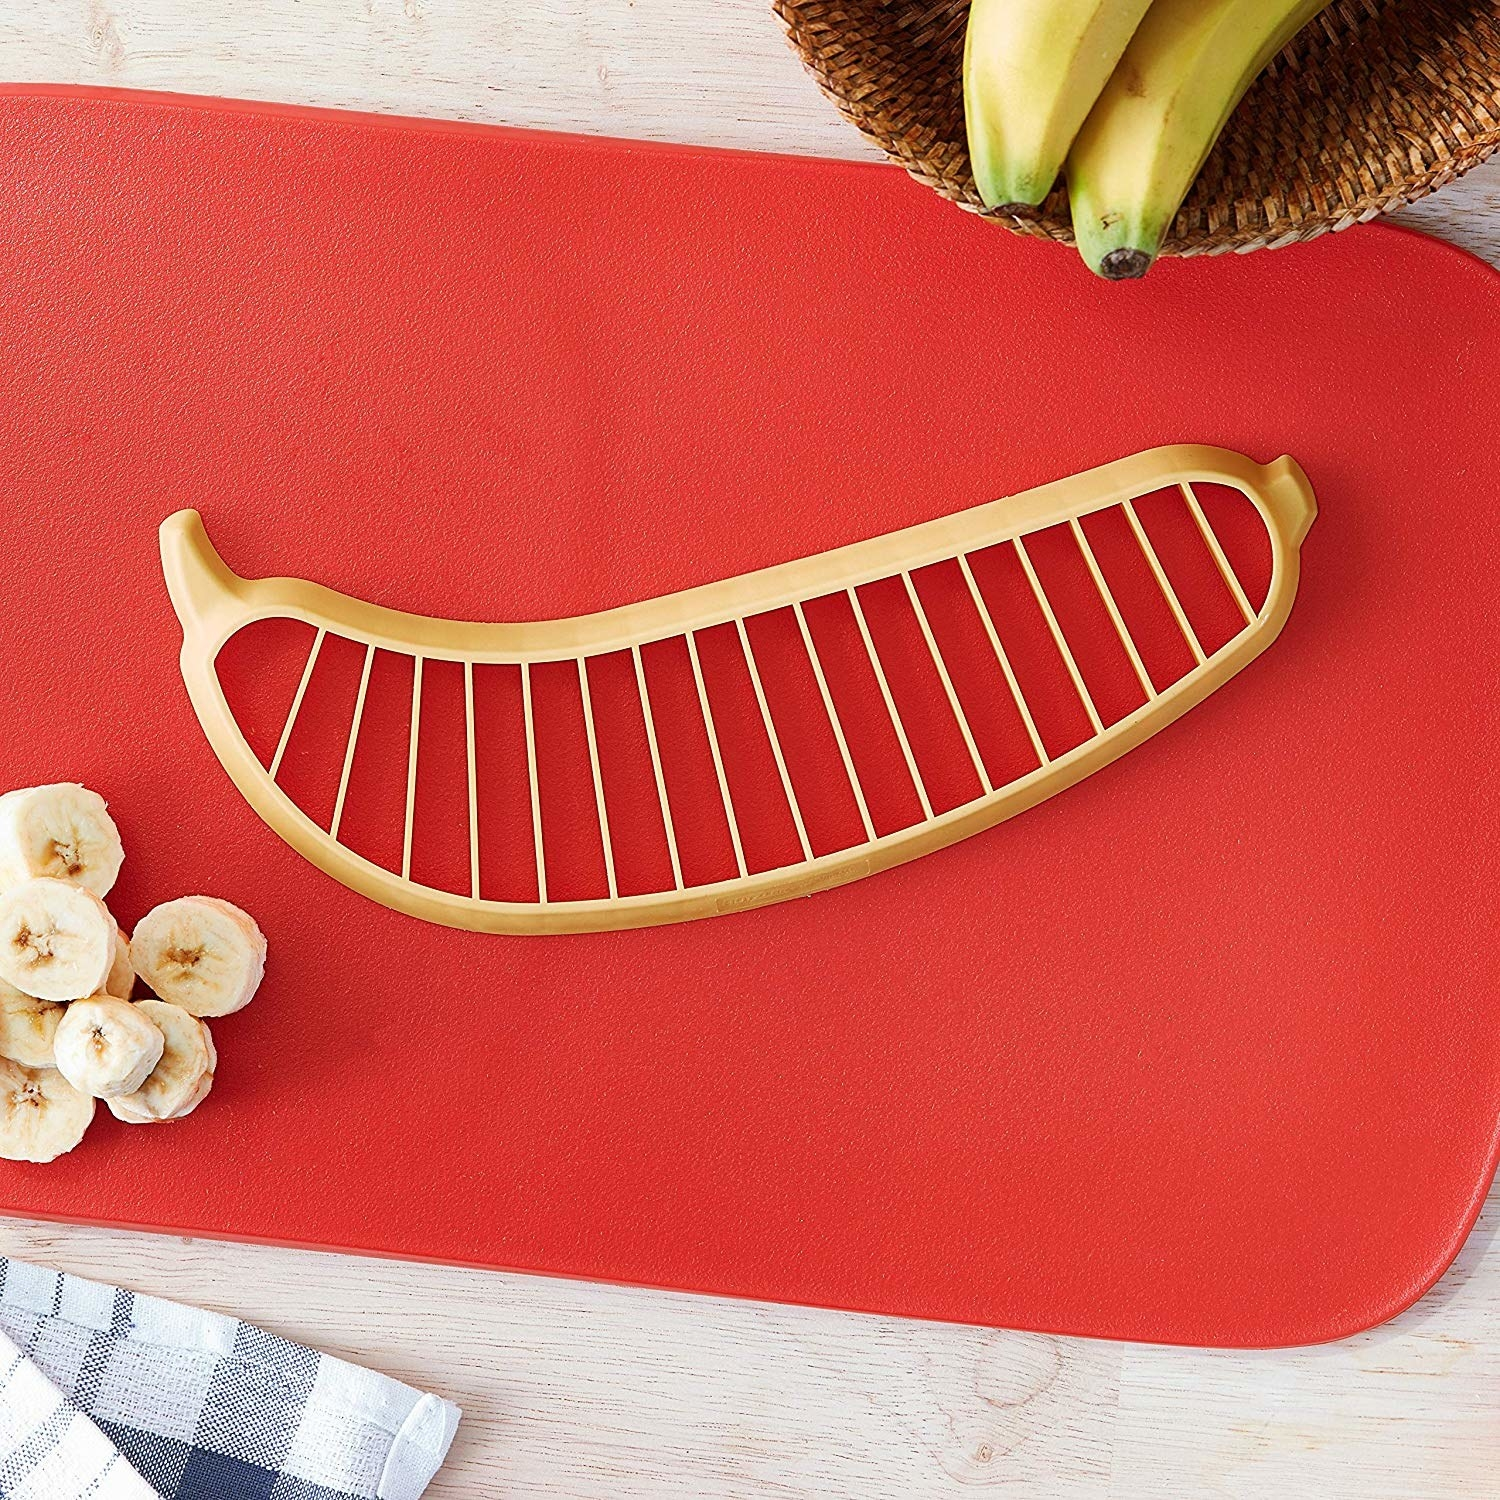 The banana slicer on a cutting board